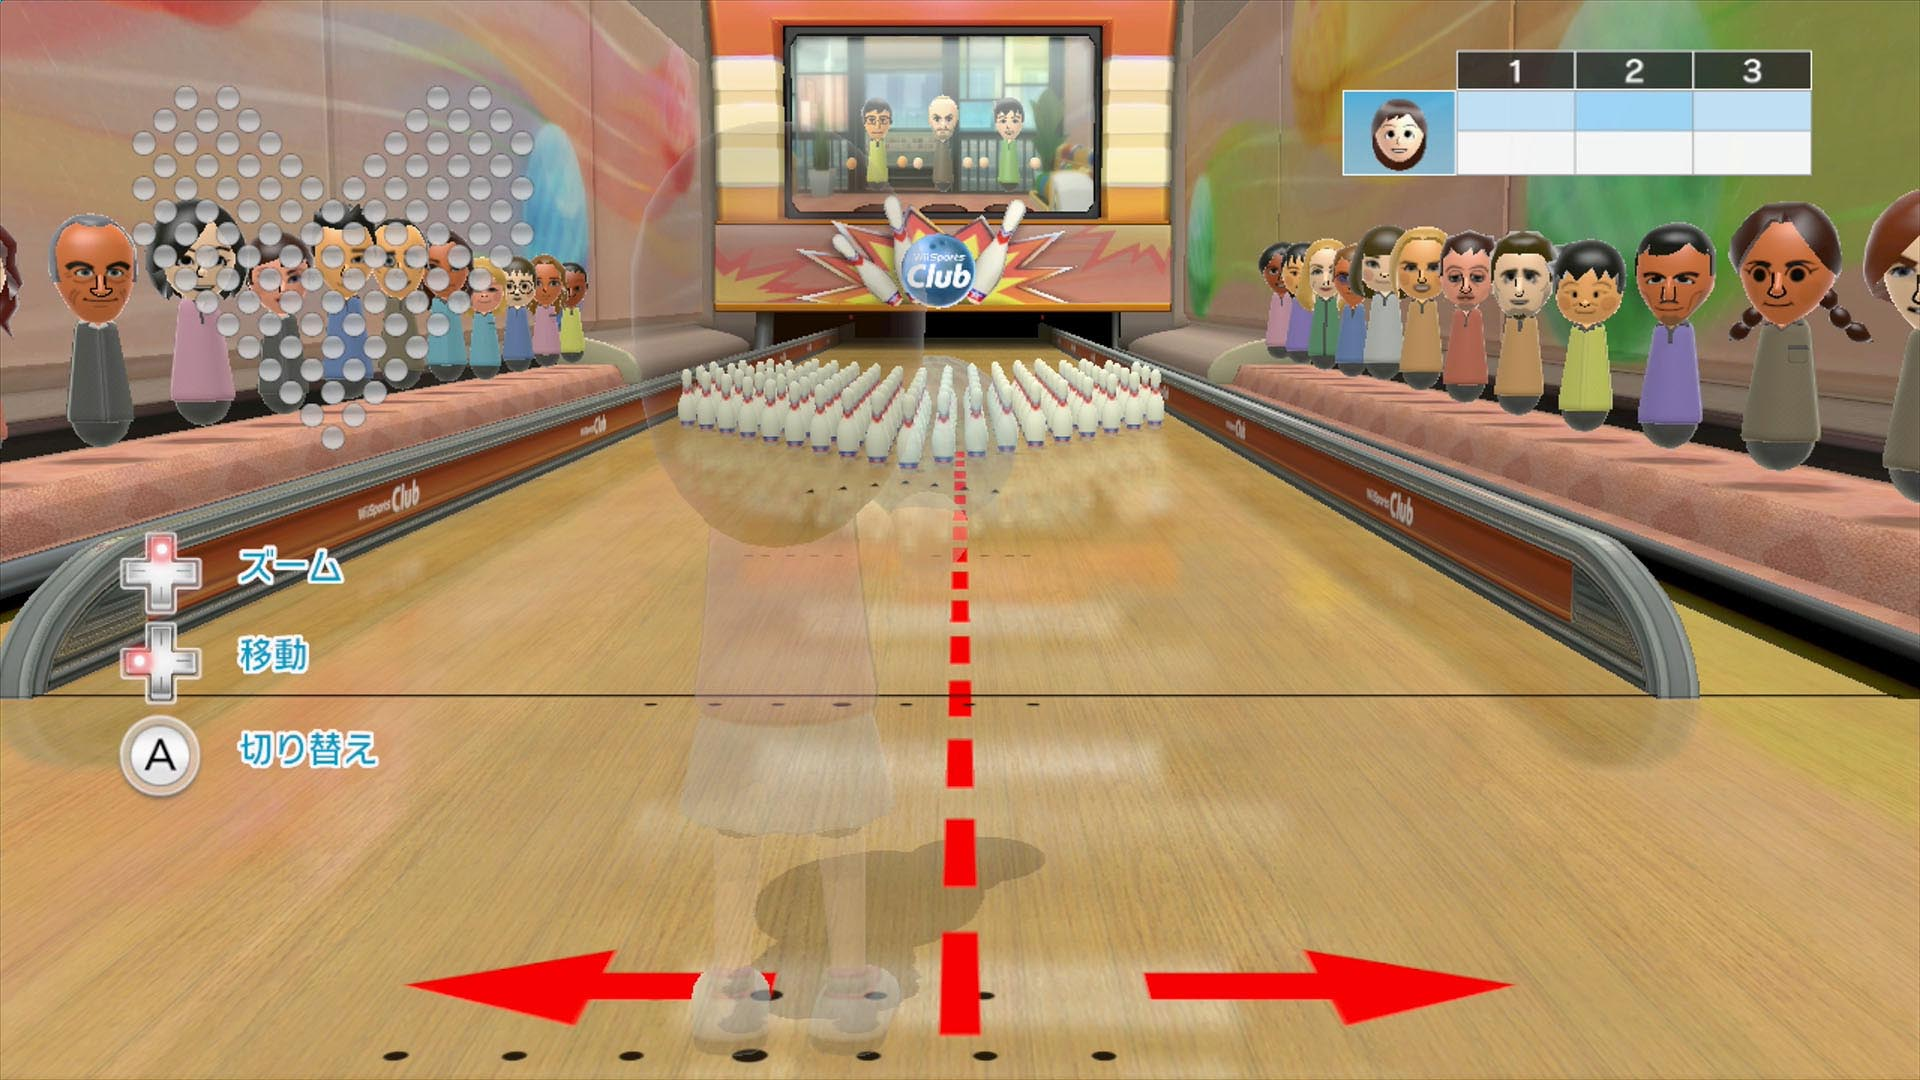 Screenshot of Wii bowling, where the computer provides arrows to assist in pointing in the right direction